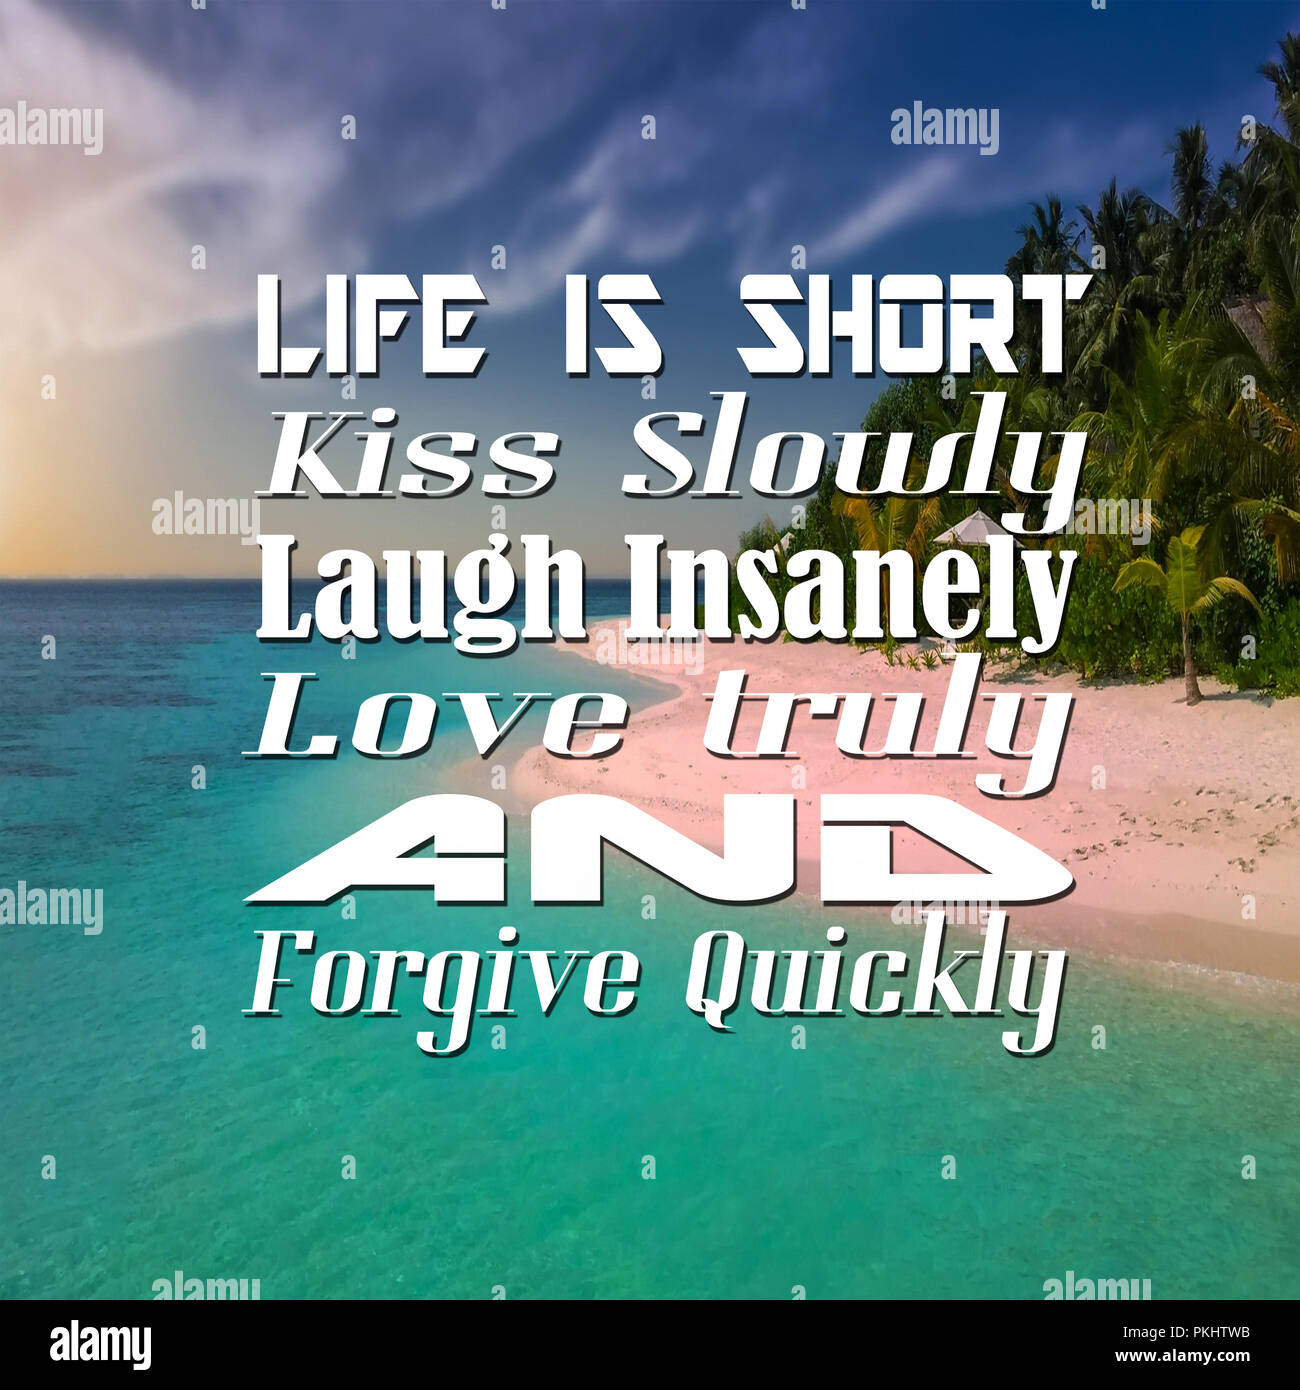 Inspirational Quotes On Love And Life: Inspirational Quotes Life Is Short Kiss Slowly Laugh